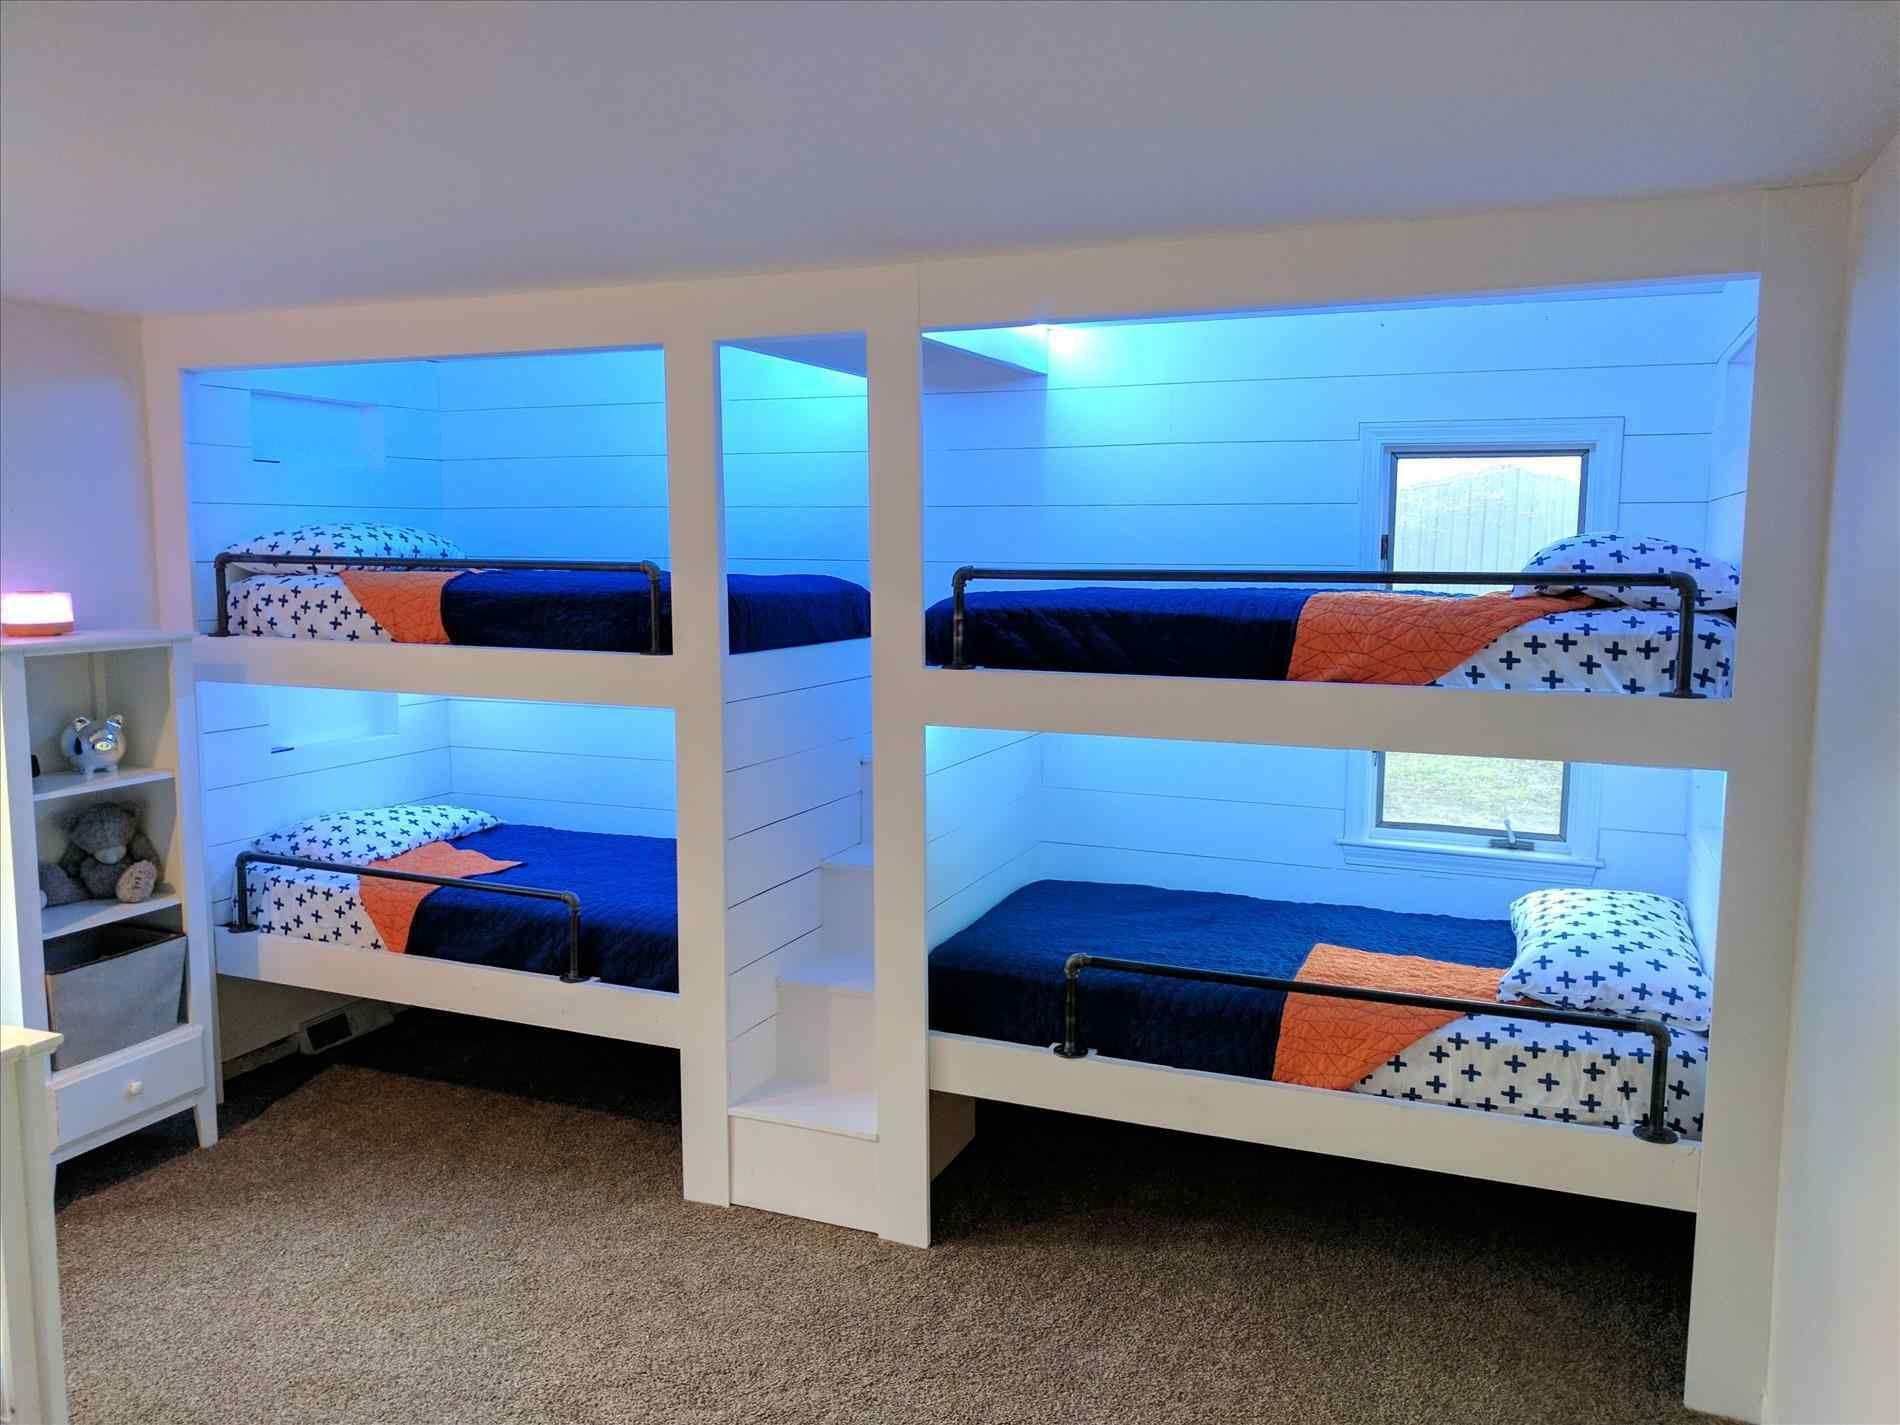 4 Bunk Beds In Wall Bunk Bed Ideas Pinterest Bunk Beds Built